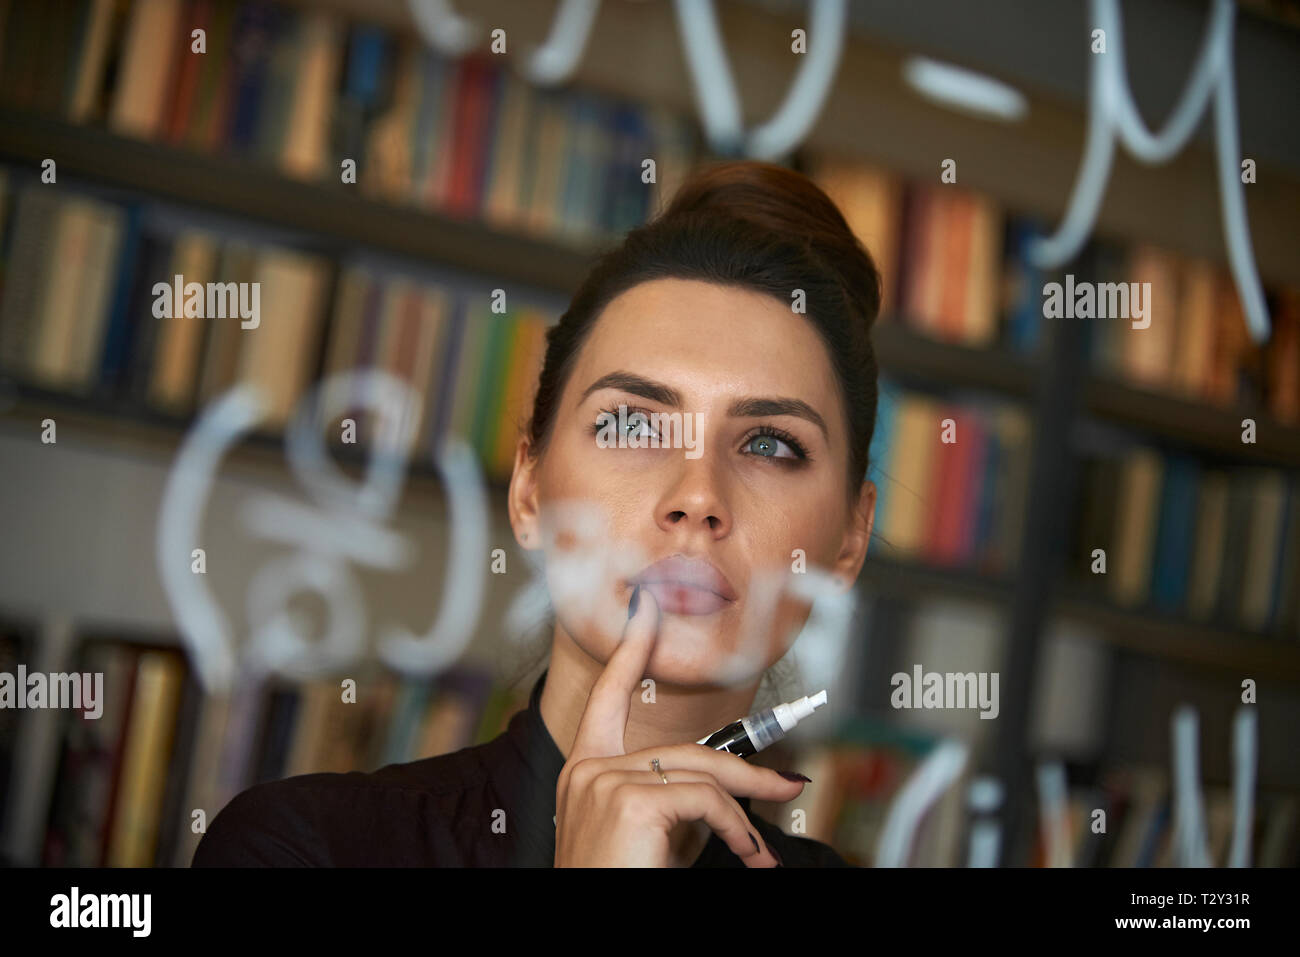 Educated business woman writing down math formula on glass - Stock Image